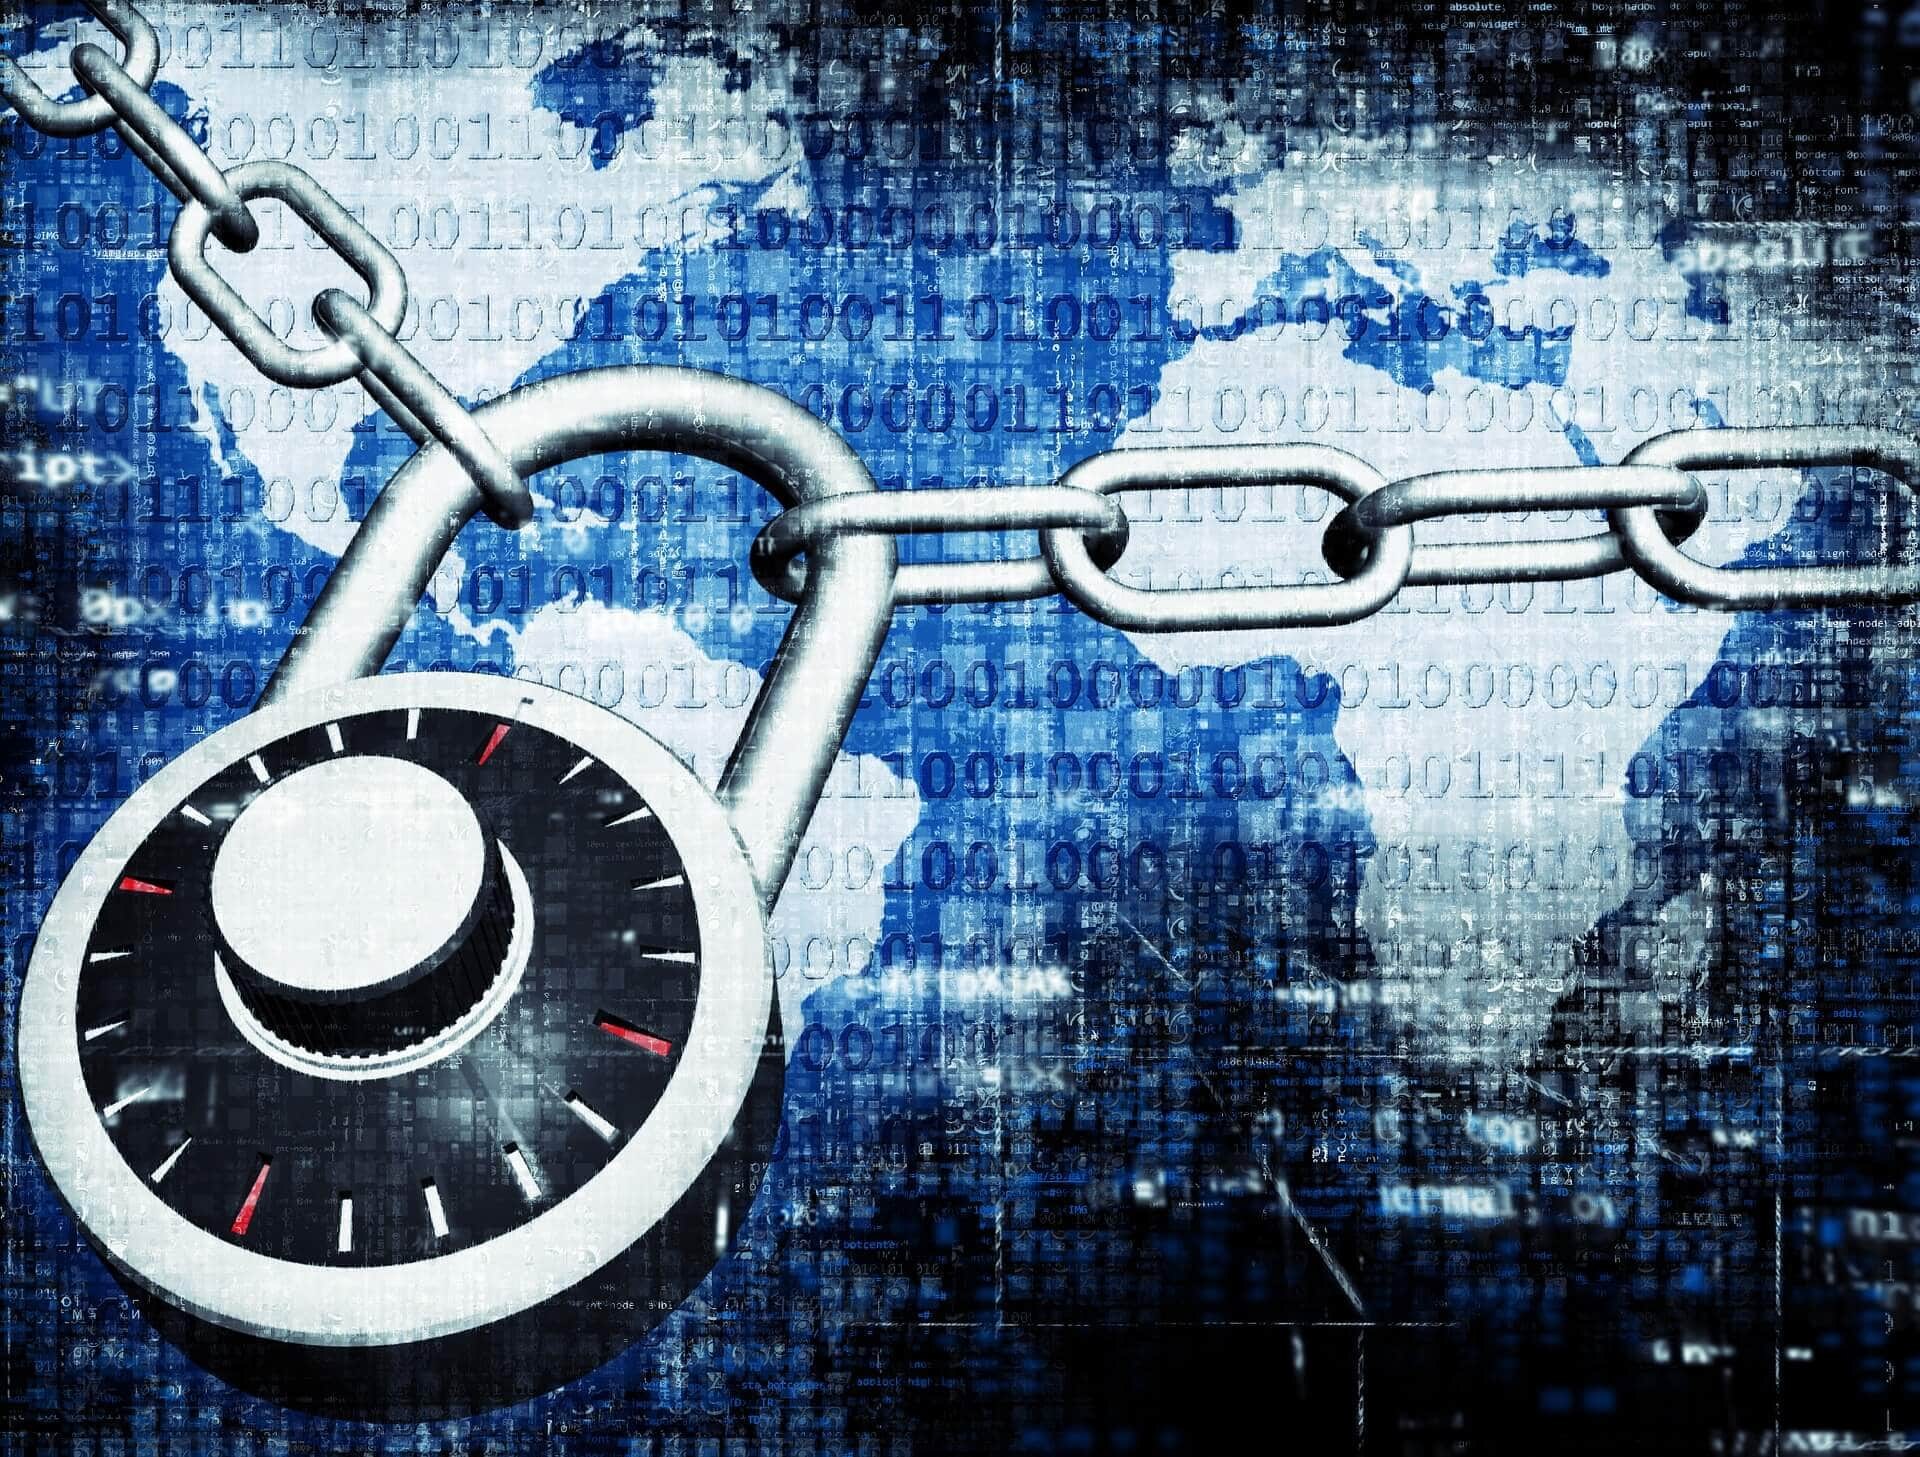 content/es-es/images/repository/isc/2020/how-to-protect-your-internet-privacy.jpg